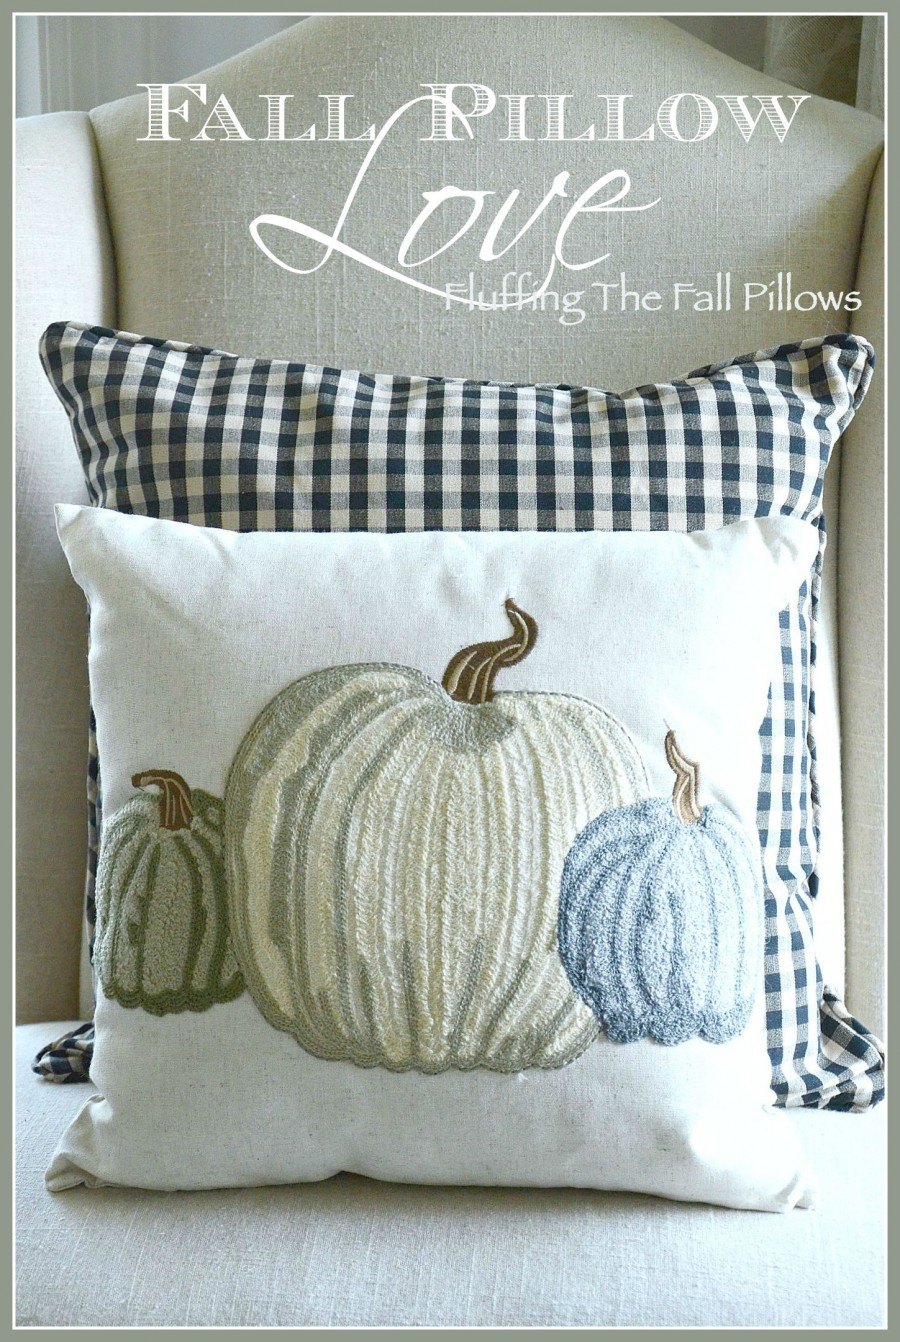 Wall Colour Inspiration: FALL PILLOW LOVE... DECORATING FOR FALL WITH PILLOWS